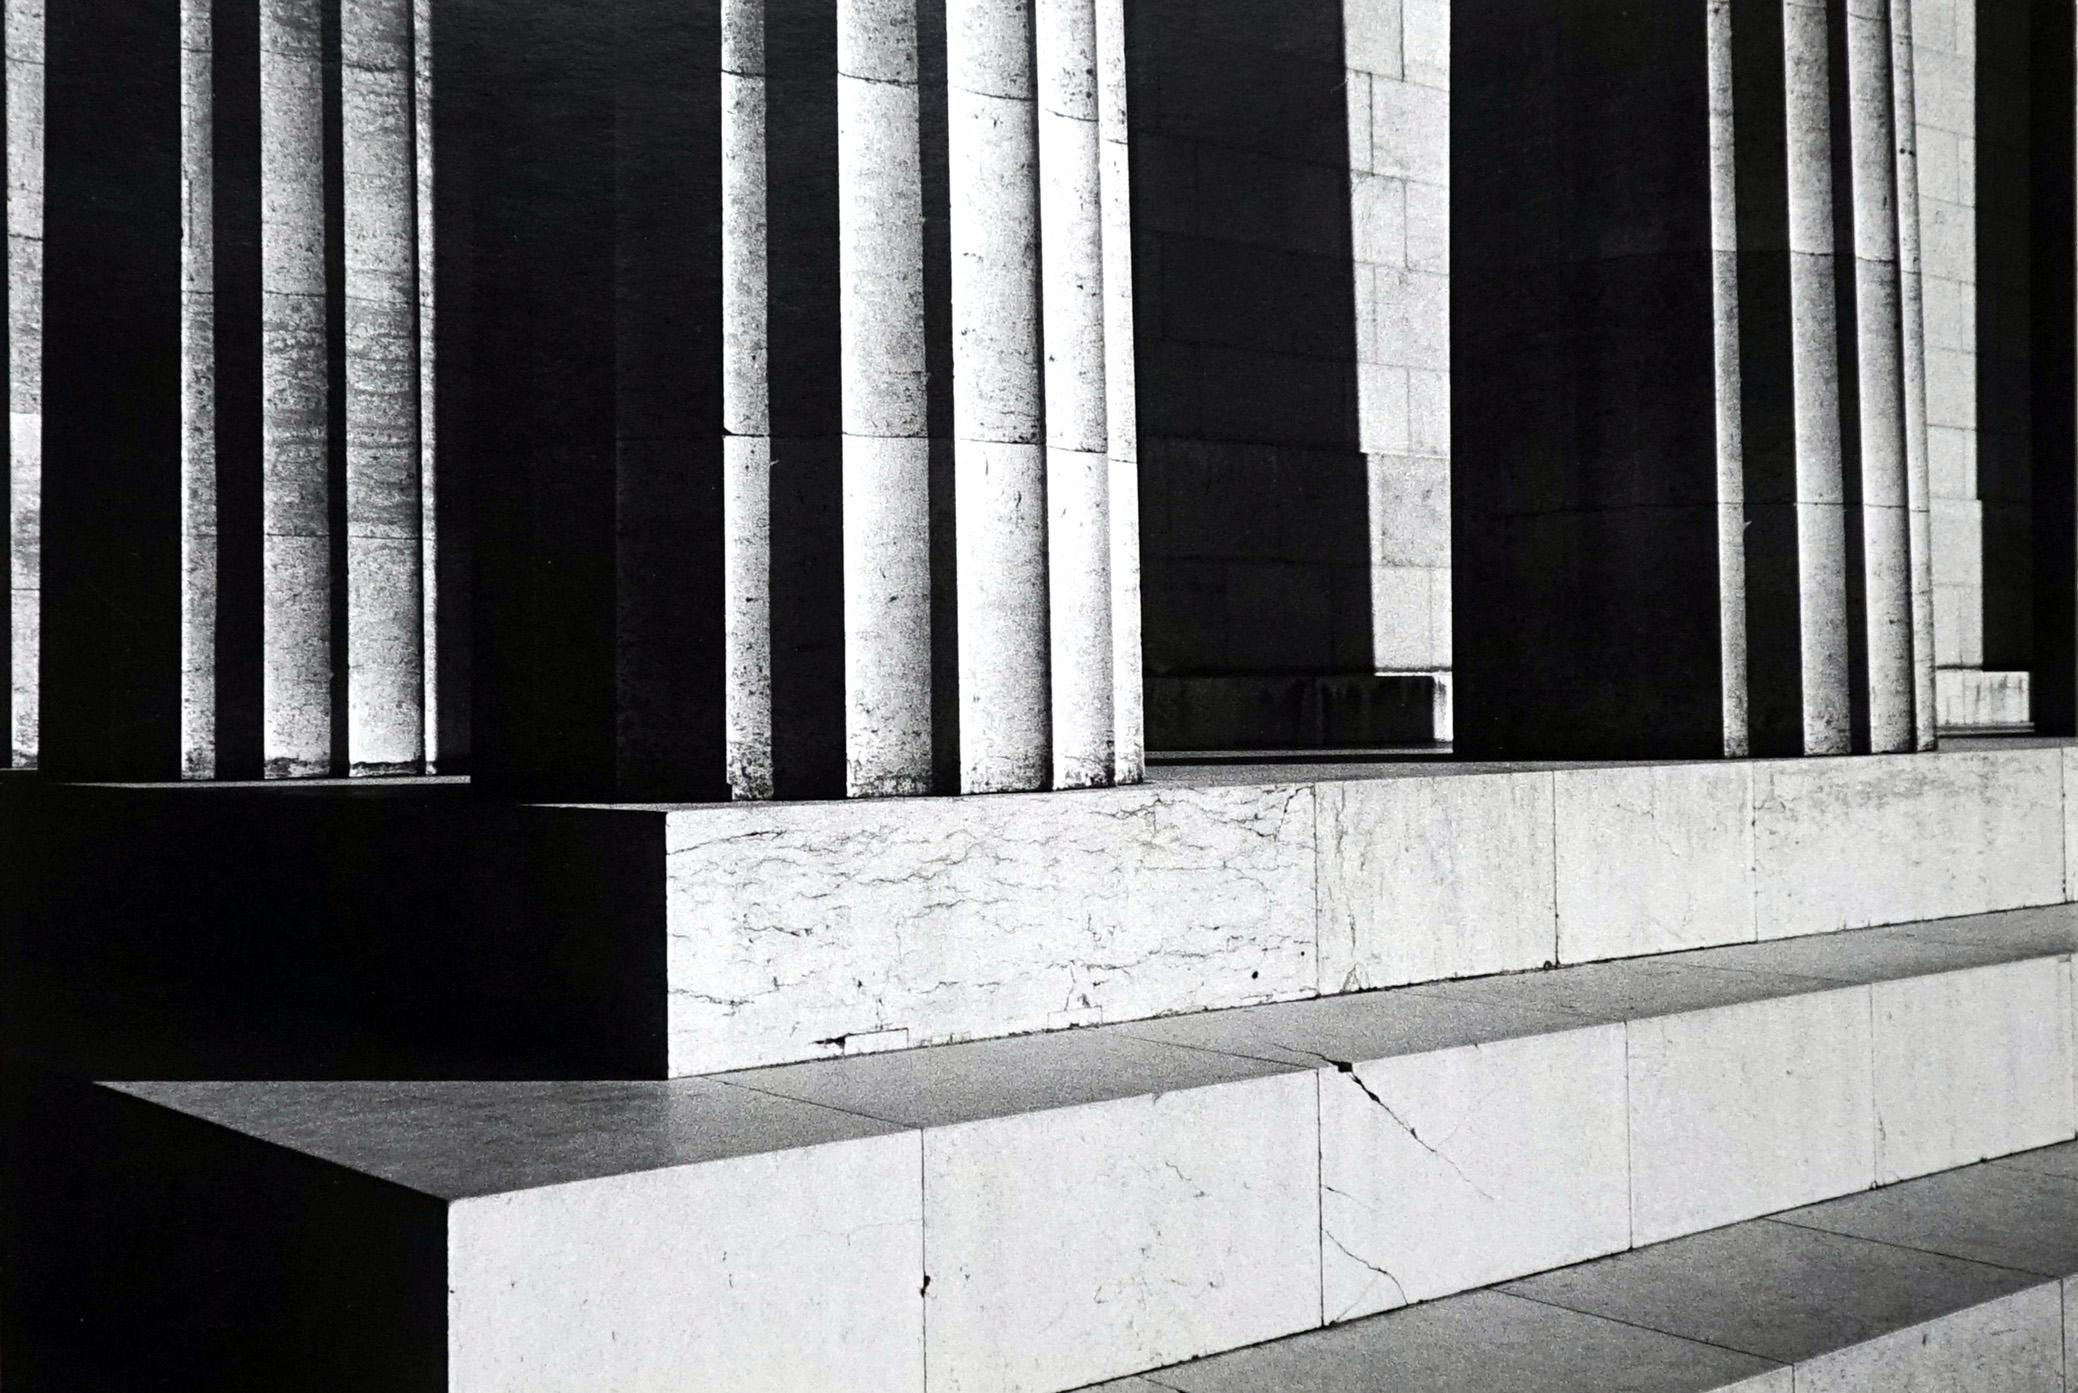 Step by Step - Off-Print # 1 - 1973 - Minimalist Black & White Photography